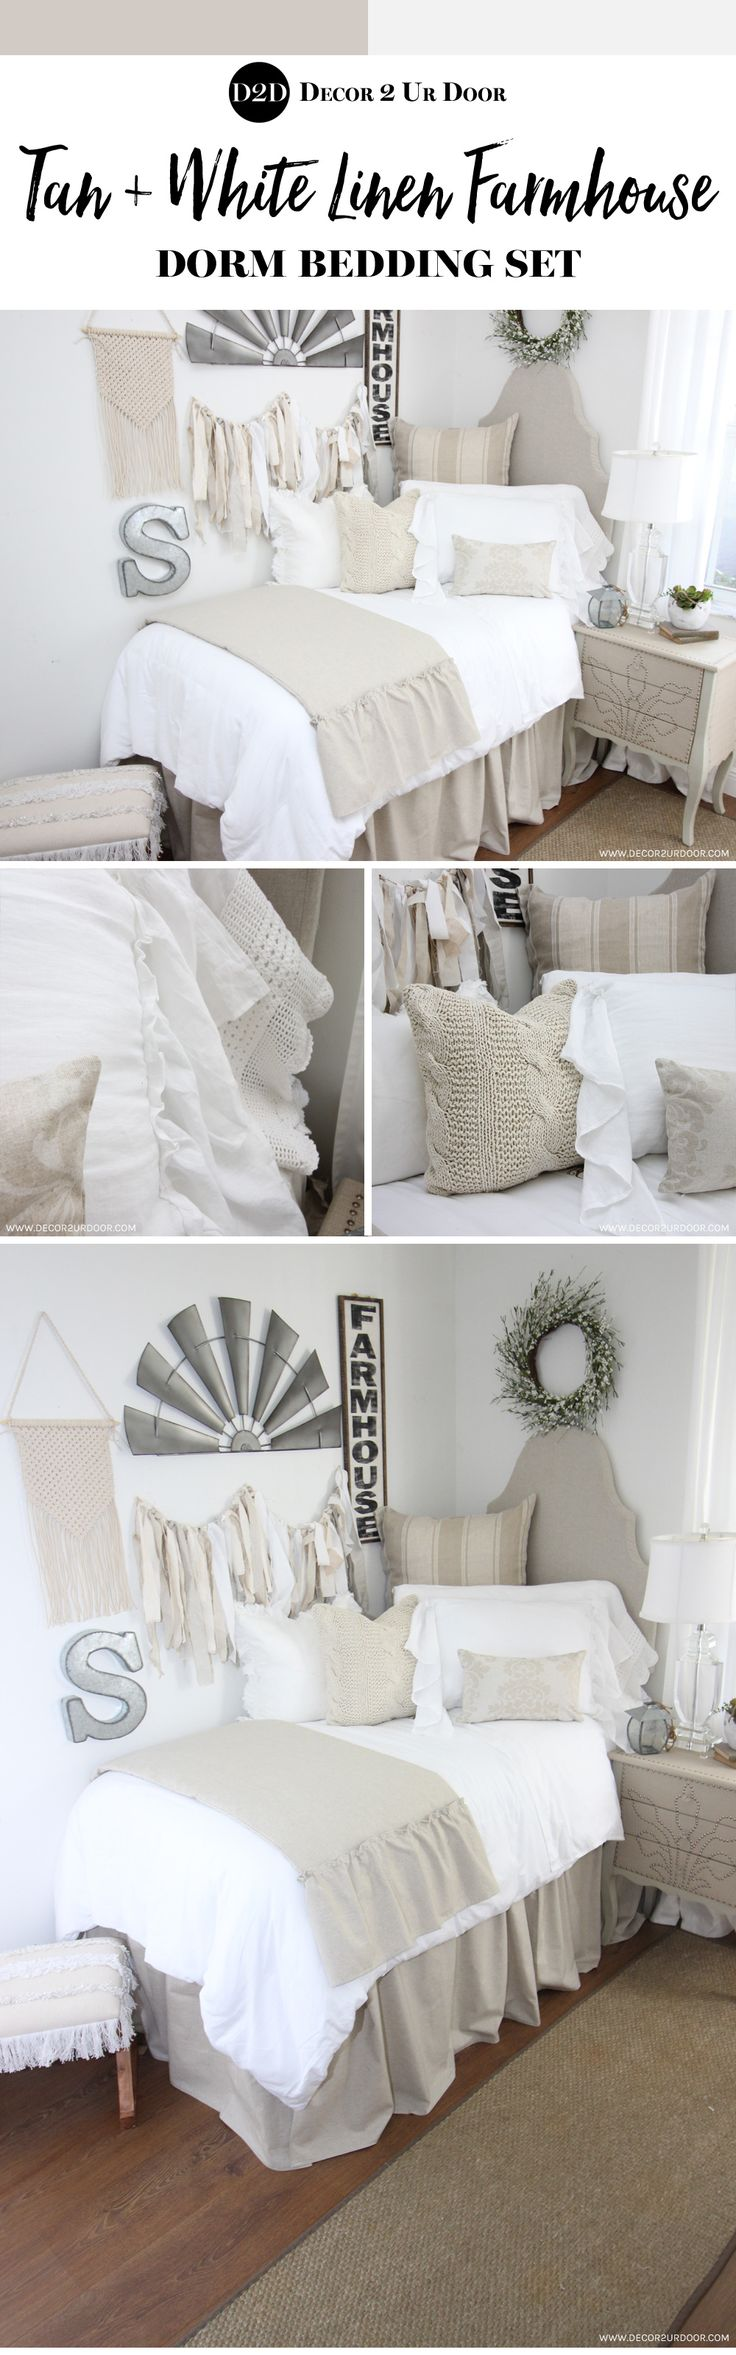 Farmhouse dorm room bedding and decor. Love that fixer upper style? Neutral dorm bedding is always a favorite. This tan and white farmhouse dorm bedding set features linen stripes, cable knit textures, and white frills. Our neutral farmhouse dorm bedding has us swooning.